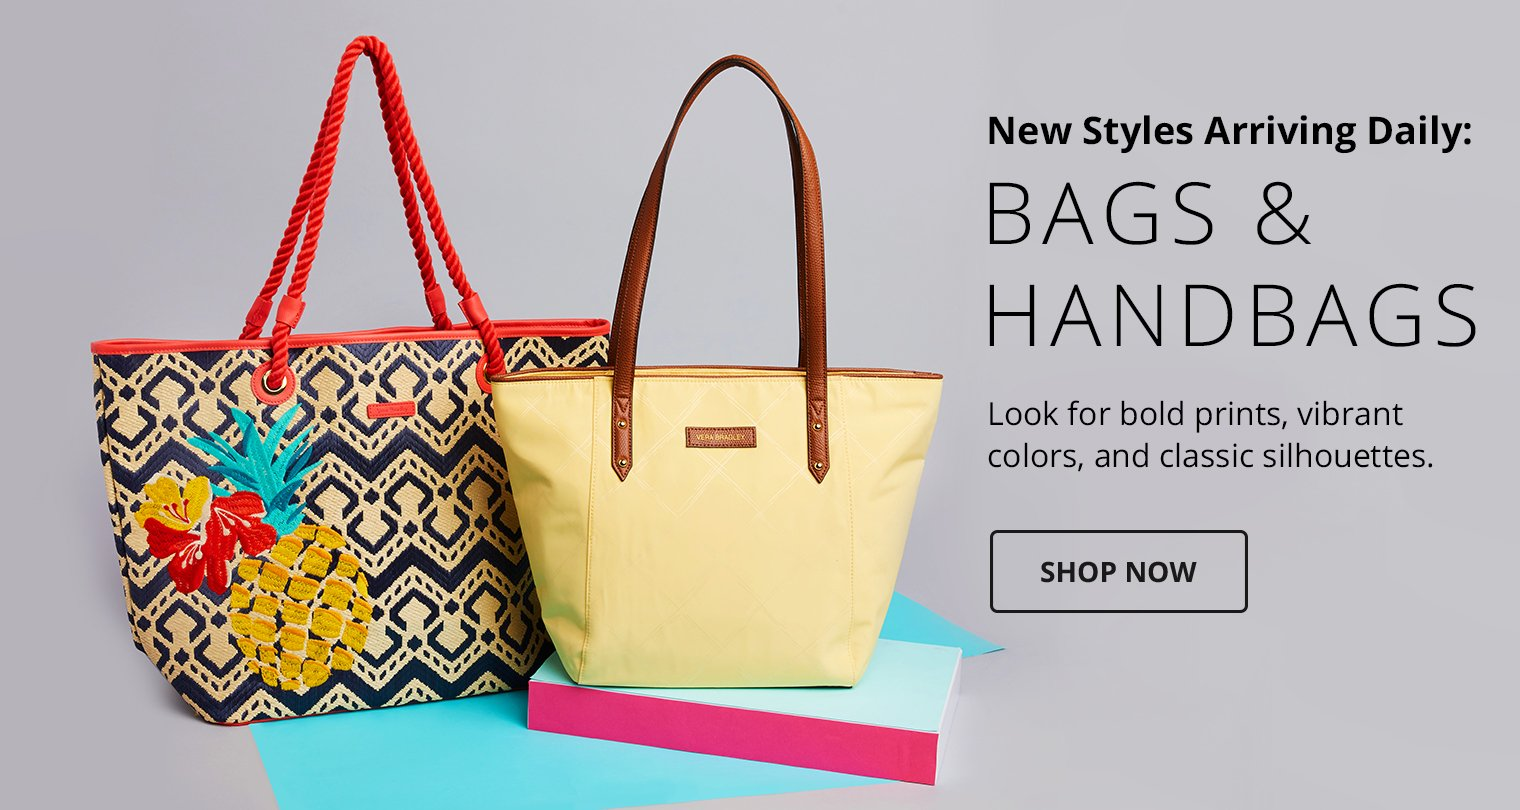 New Styles Arriving Daily: Bags & Handbags. Shop Now.